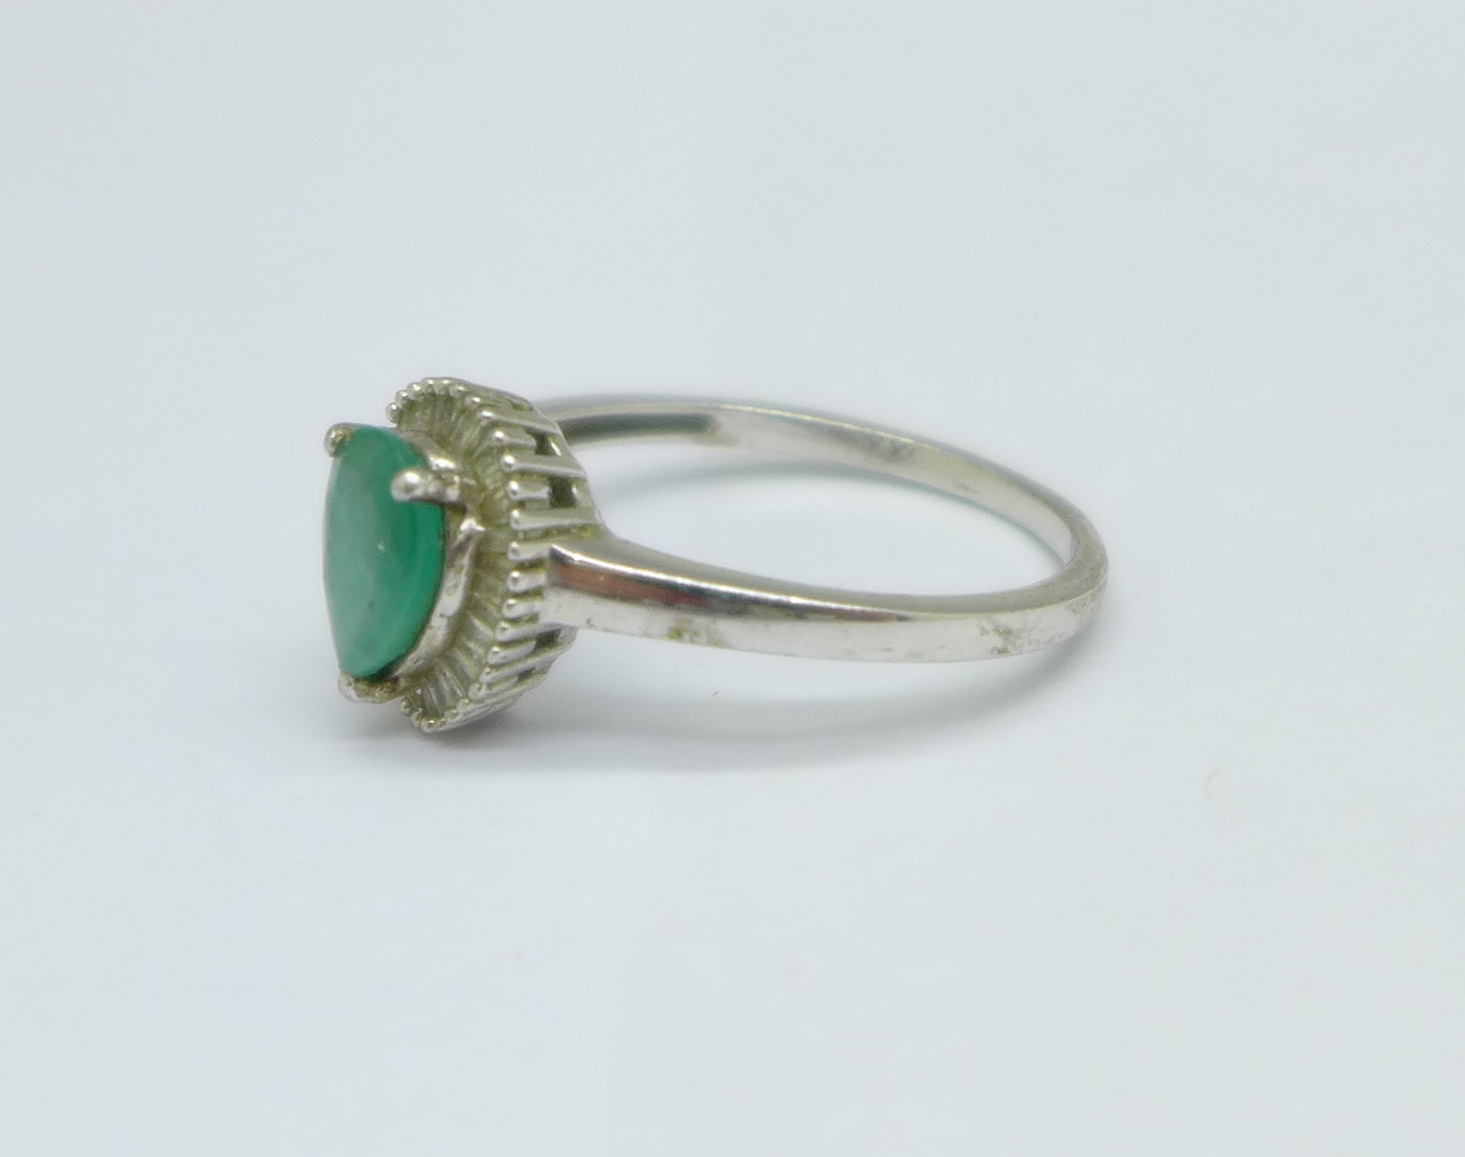 A silver, emerald and diamond set ring, T/U - Image 2 of 3